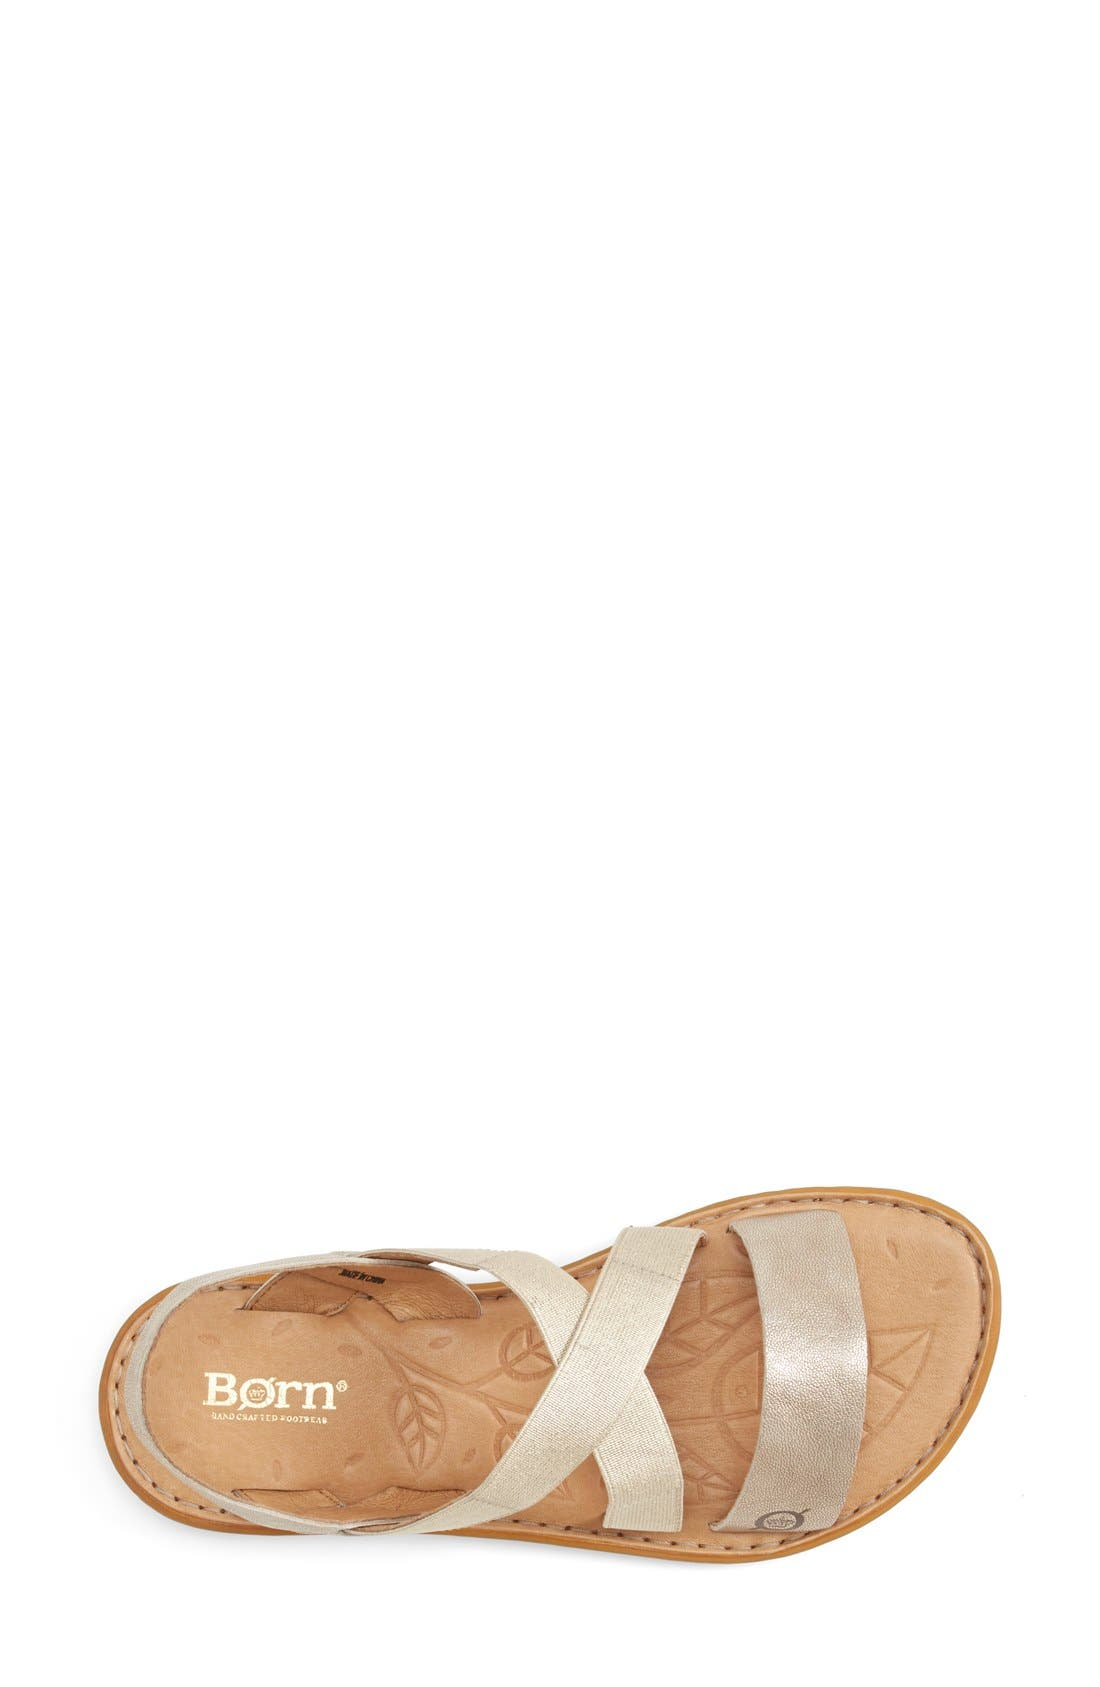 Alternate Image 3  - Børn 'Icelyn' Flat Sandal (Women)